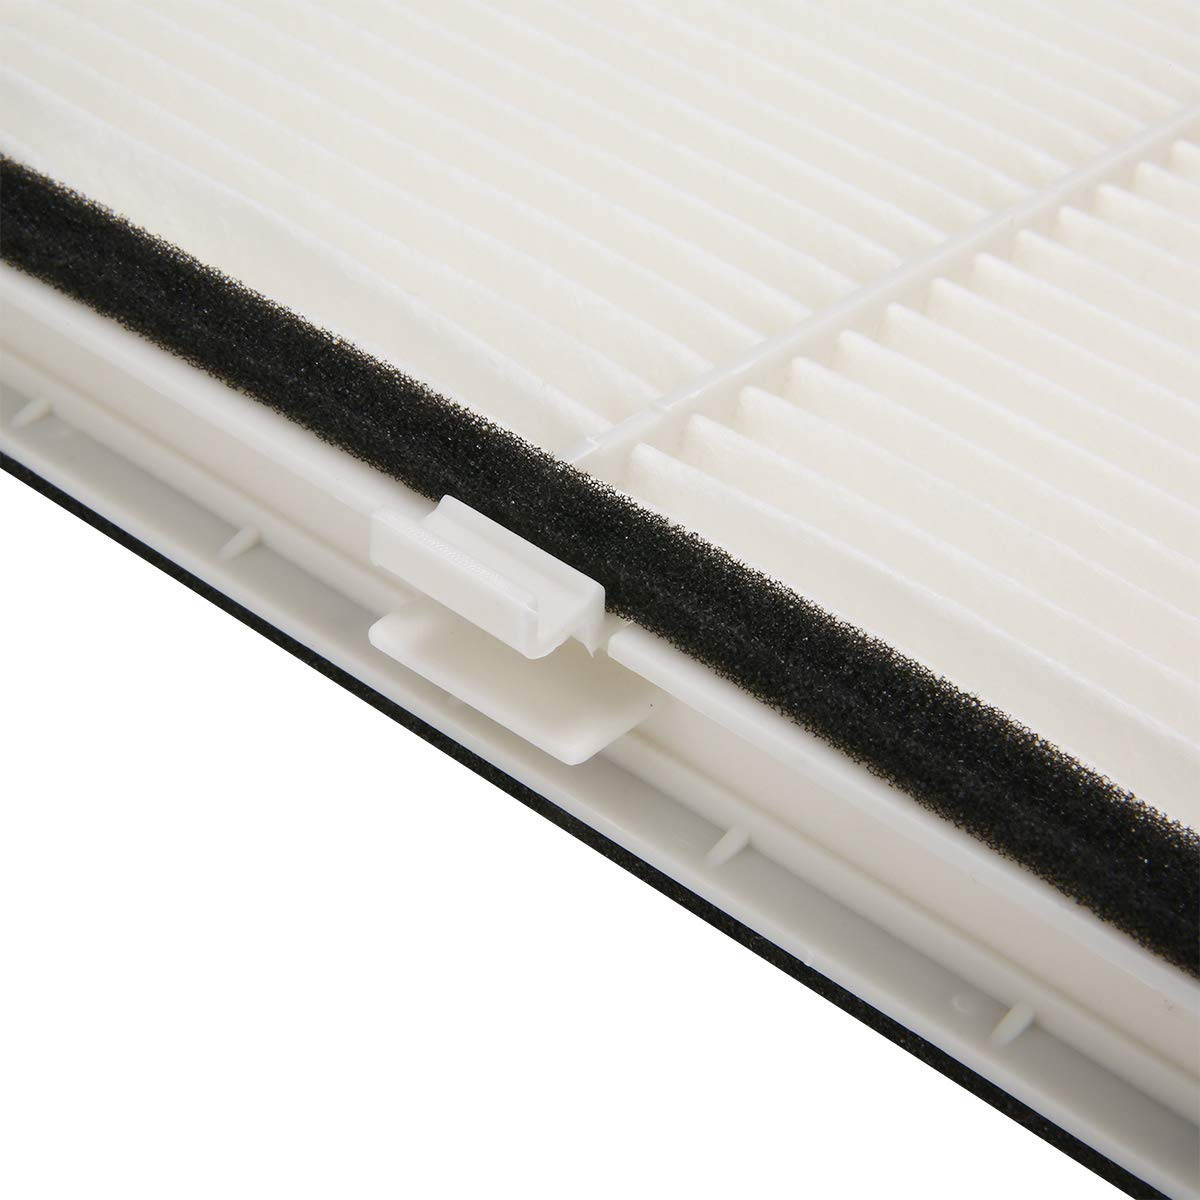 SODIAL Automotive Cabin Air Filter Air Conditioning System Filter For Mazda 3 14-17 6 13-17 Cx-5 12-17 Kd45-61-J6X